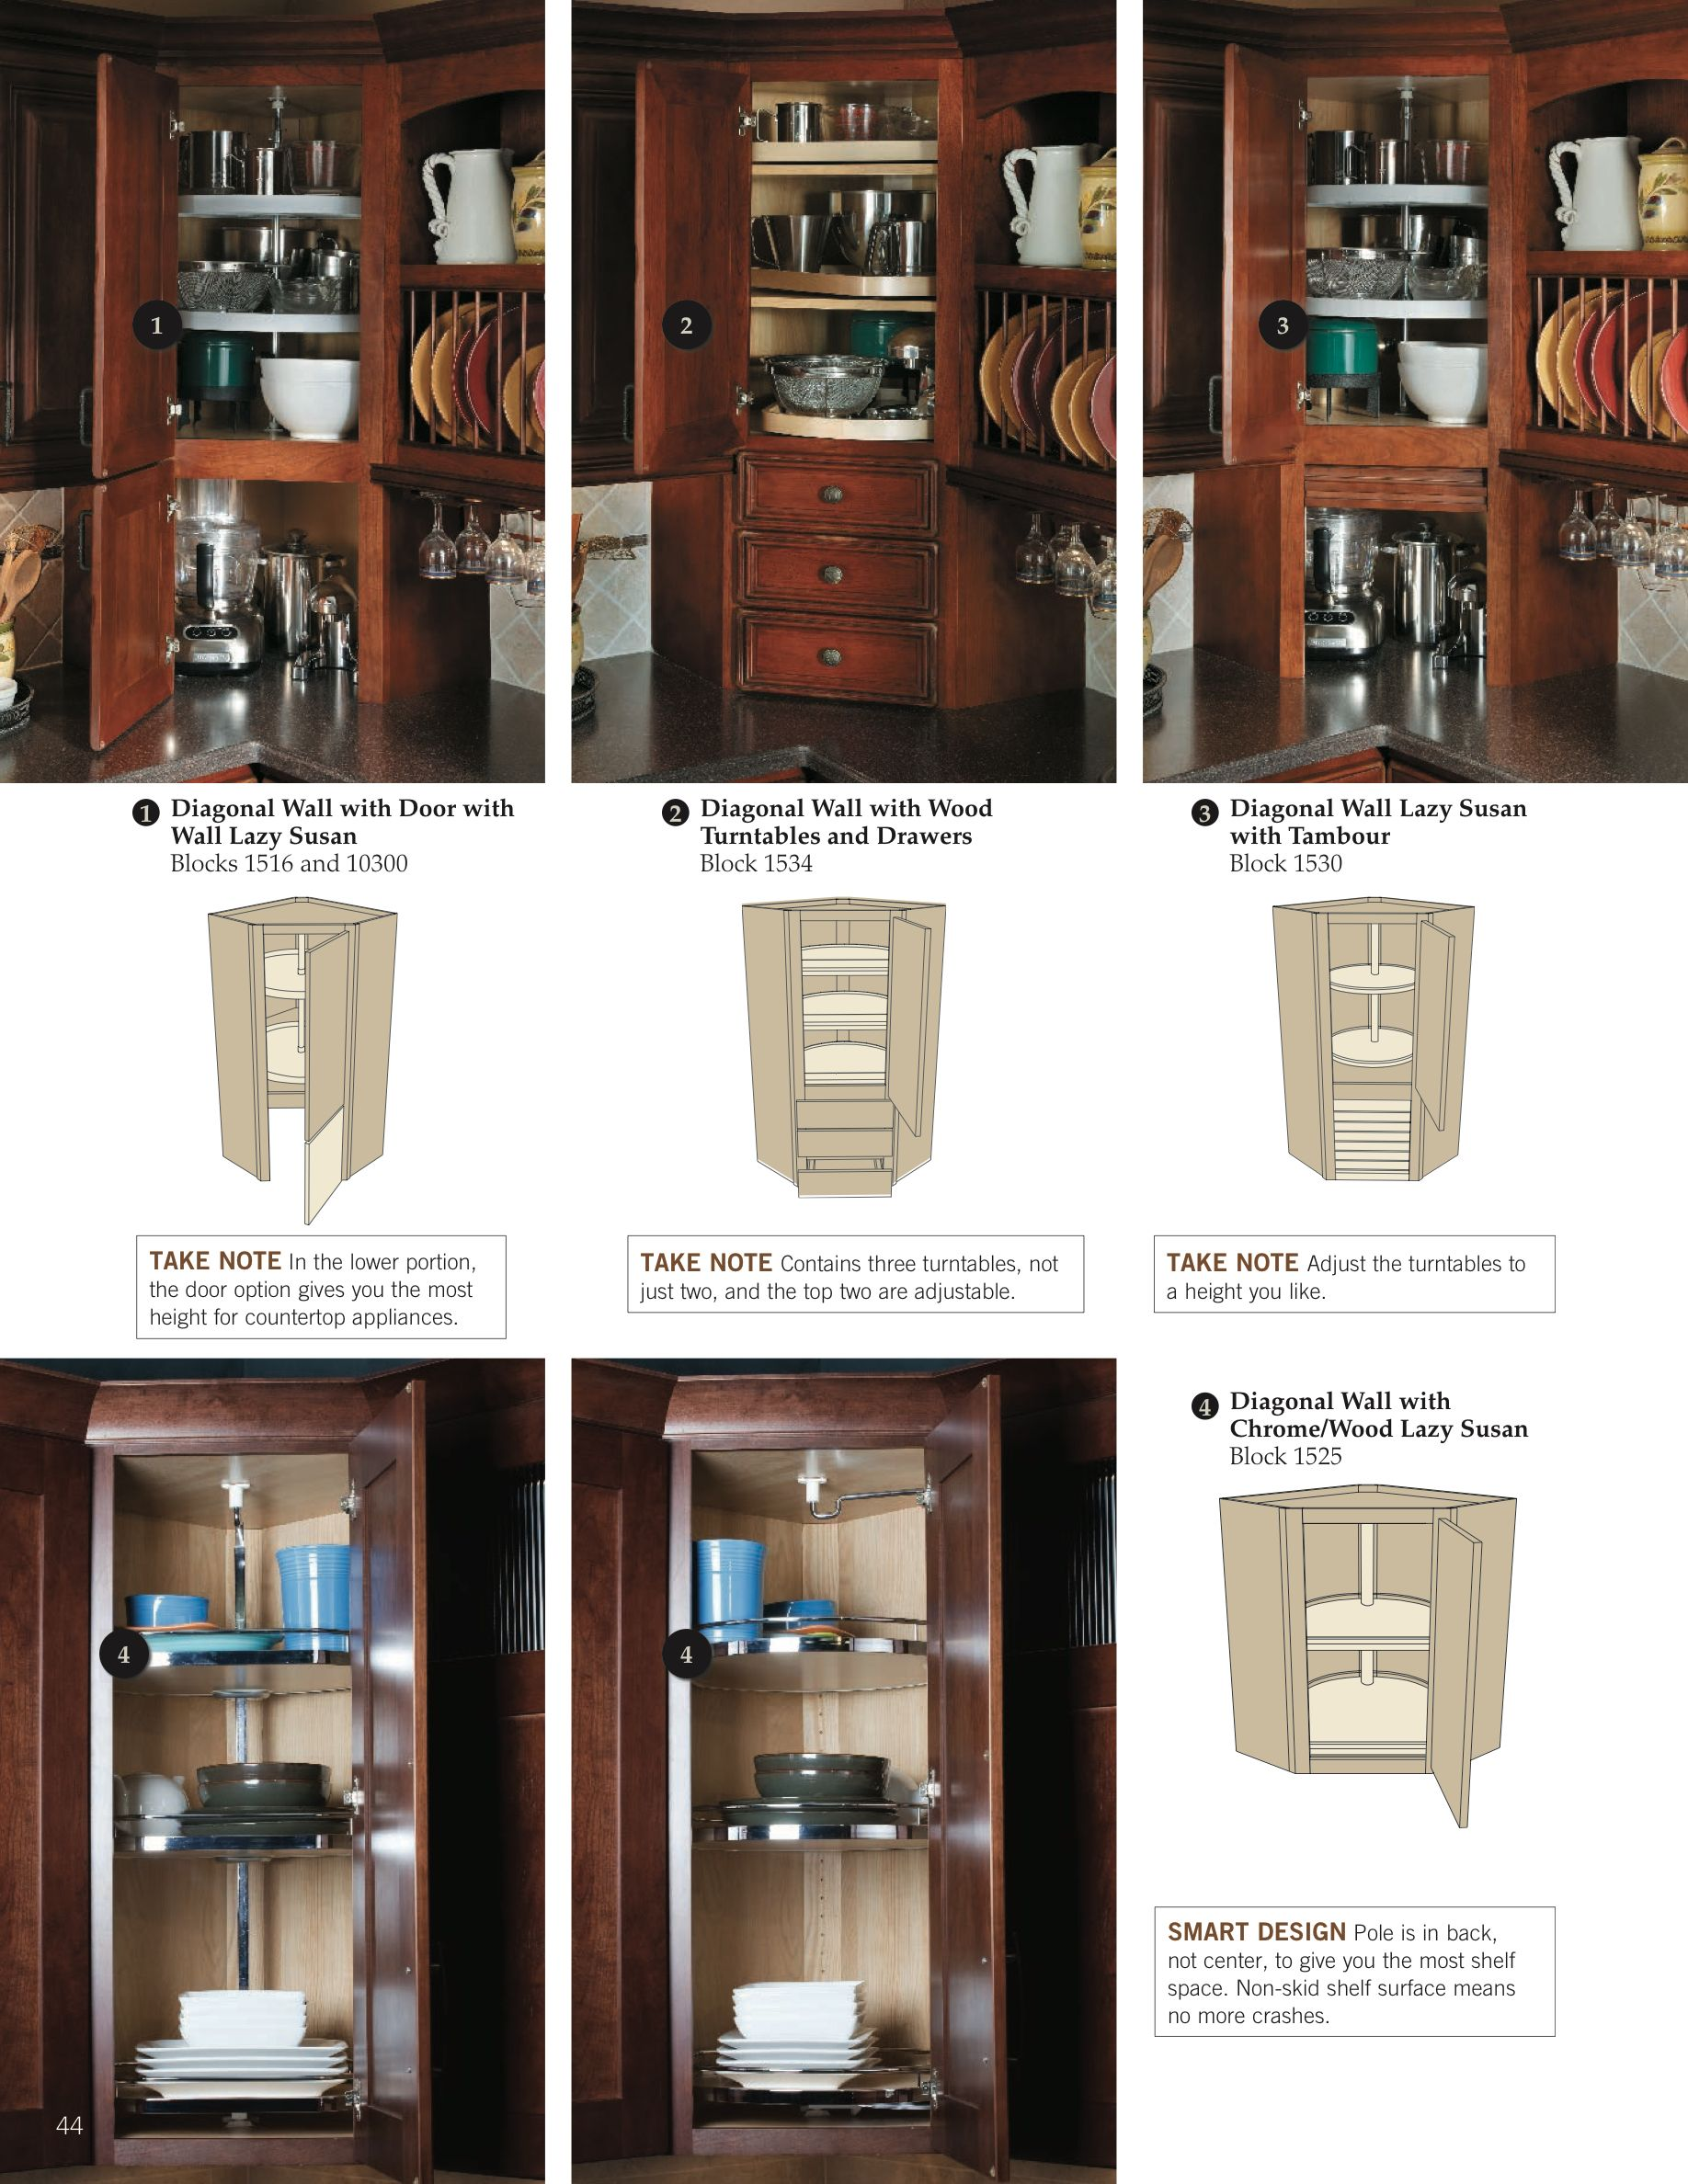 Organize And Store Kitchen Cabinet Shelves Organization Kitchen Organization